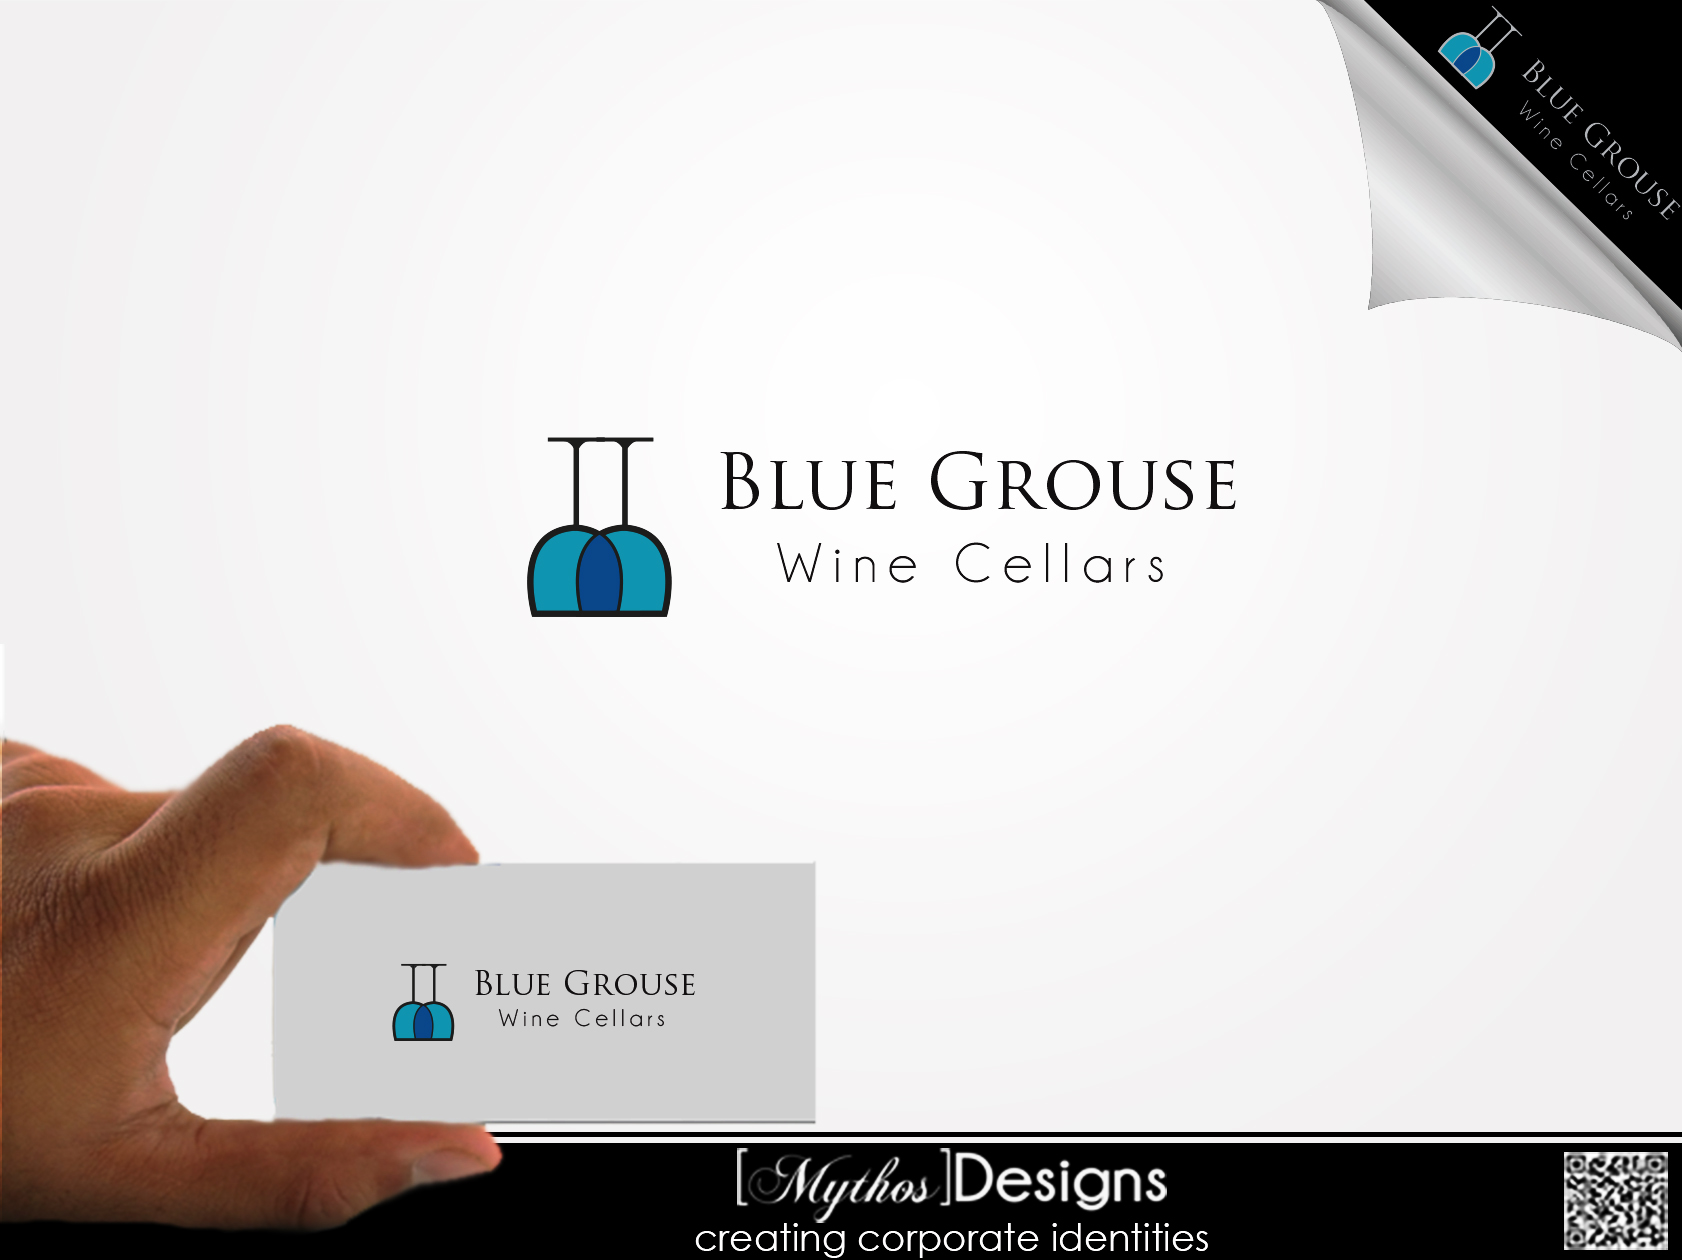 Logo Design by Mythos Designs - Entry No. 7 in the Logo Design Contest Creative Logo Design for Blue Grouse Wine Cellars.